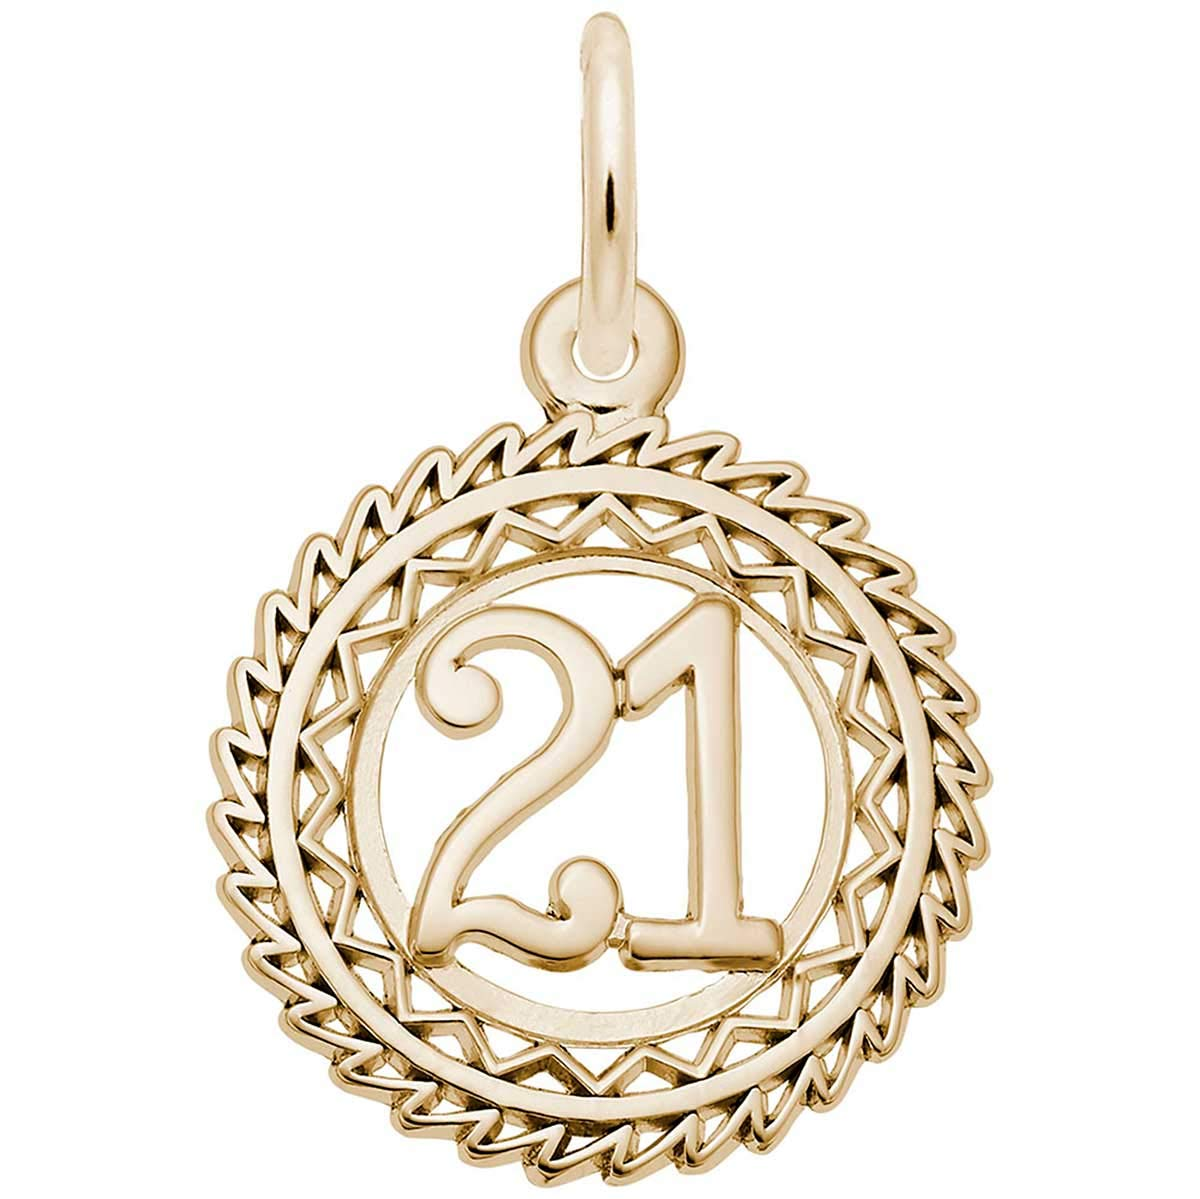 Rembrandt Charms Number 21 Charm, 14K Yellow Gold